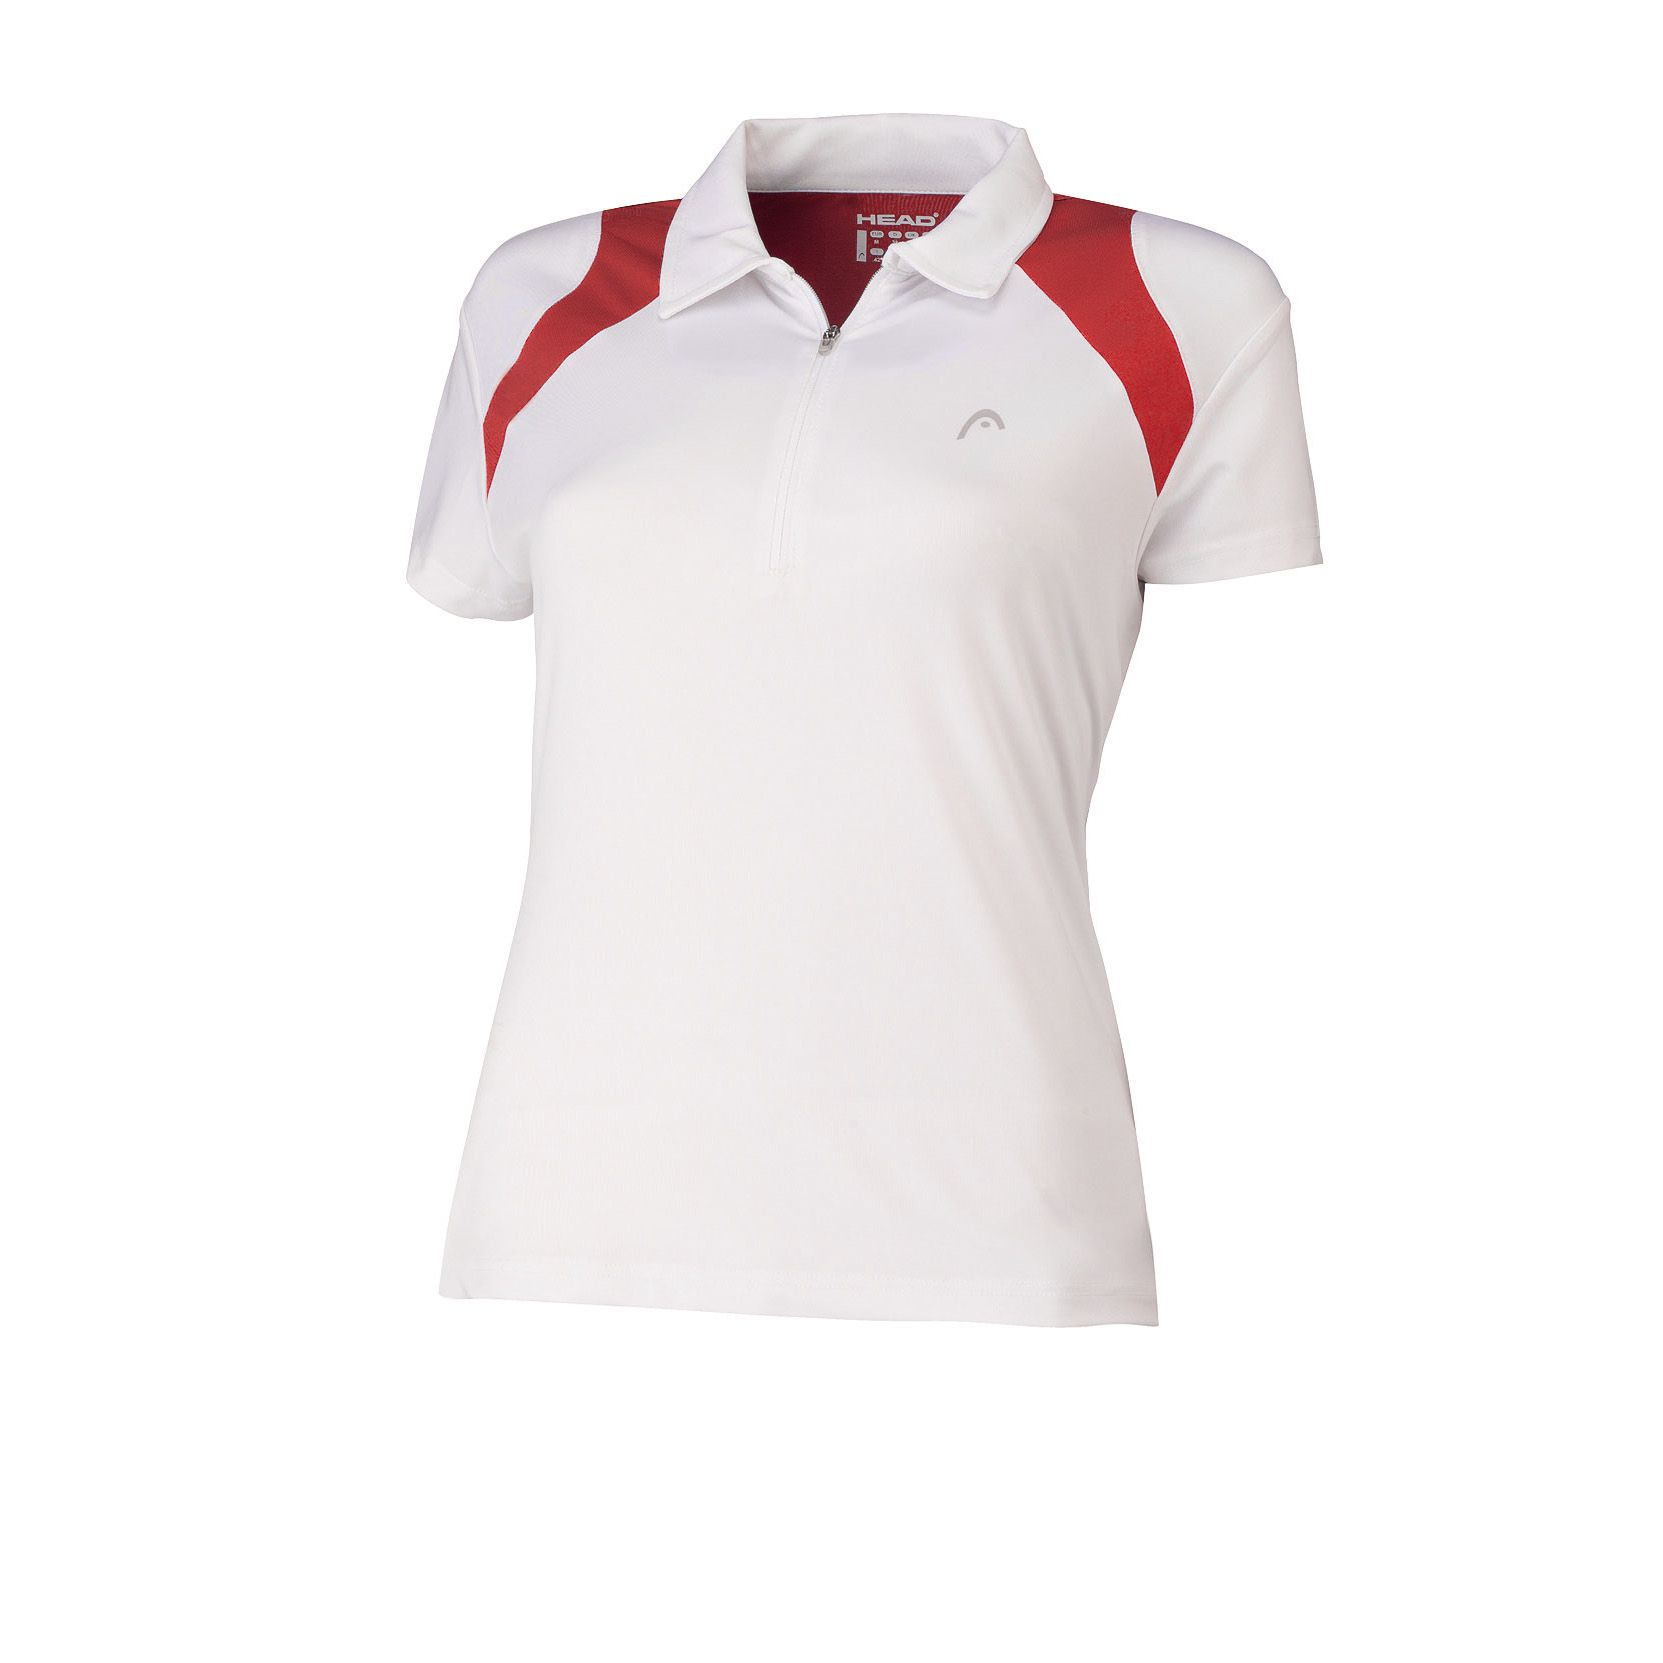 polo girls We've updated this classic look with a ruffle placket she'll love.